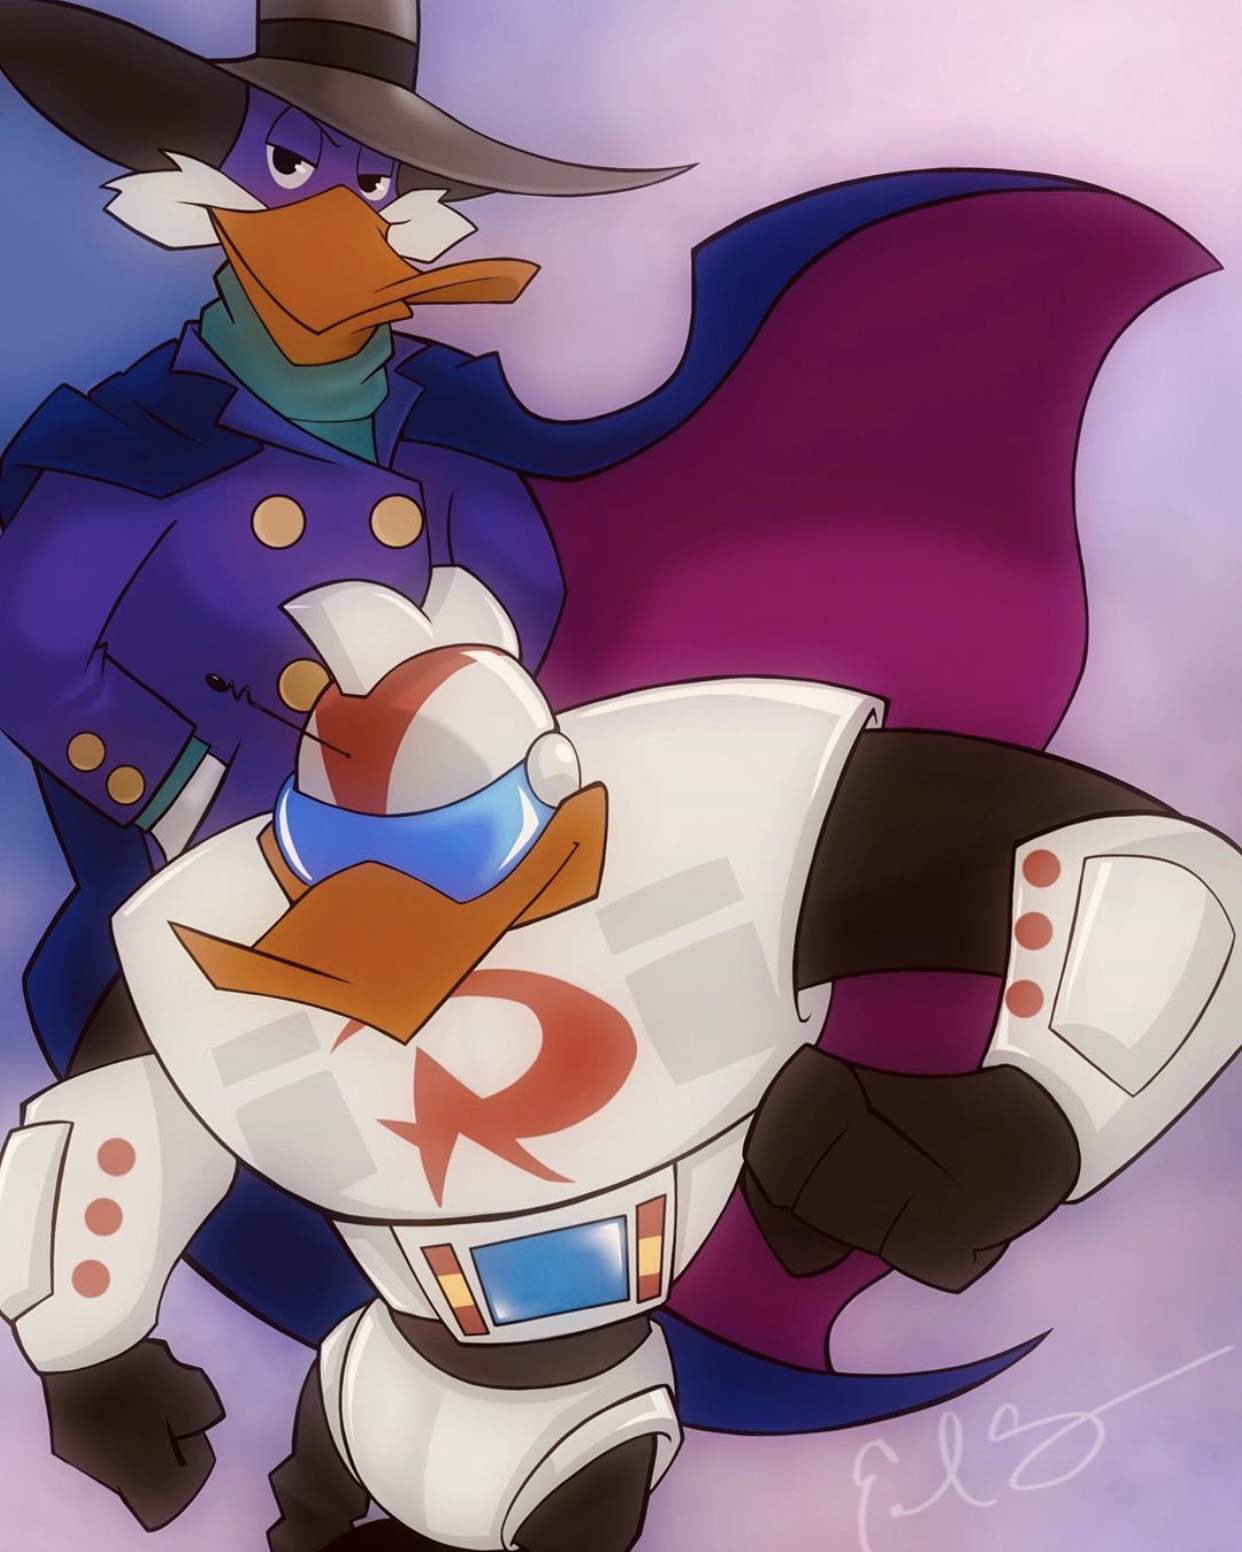 Darkwing & Gizmo Duck